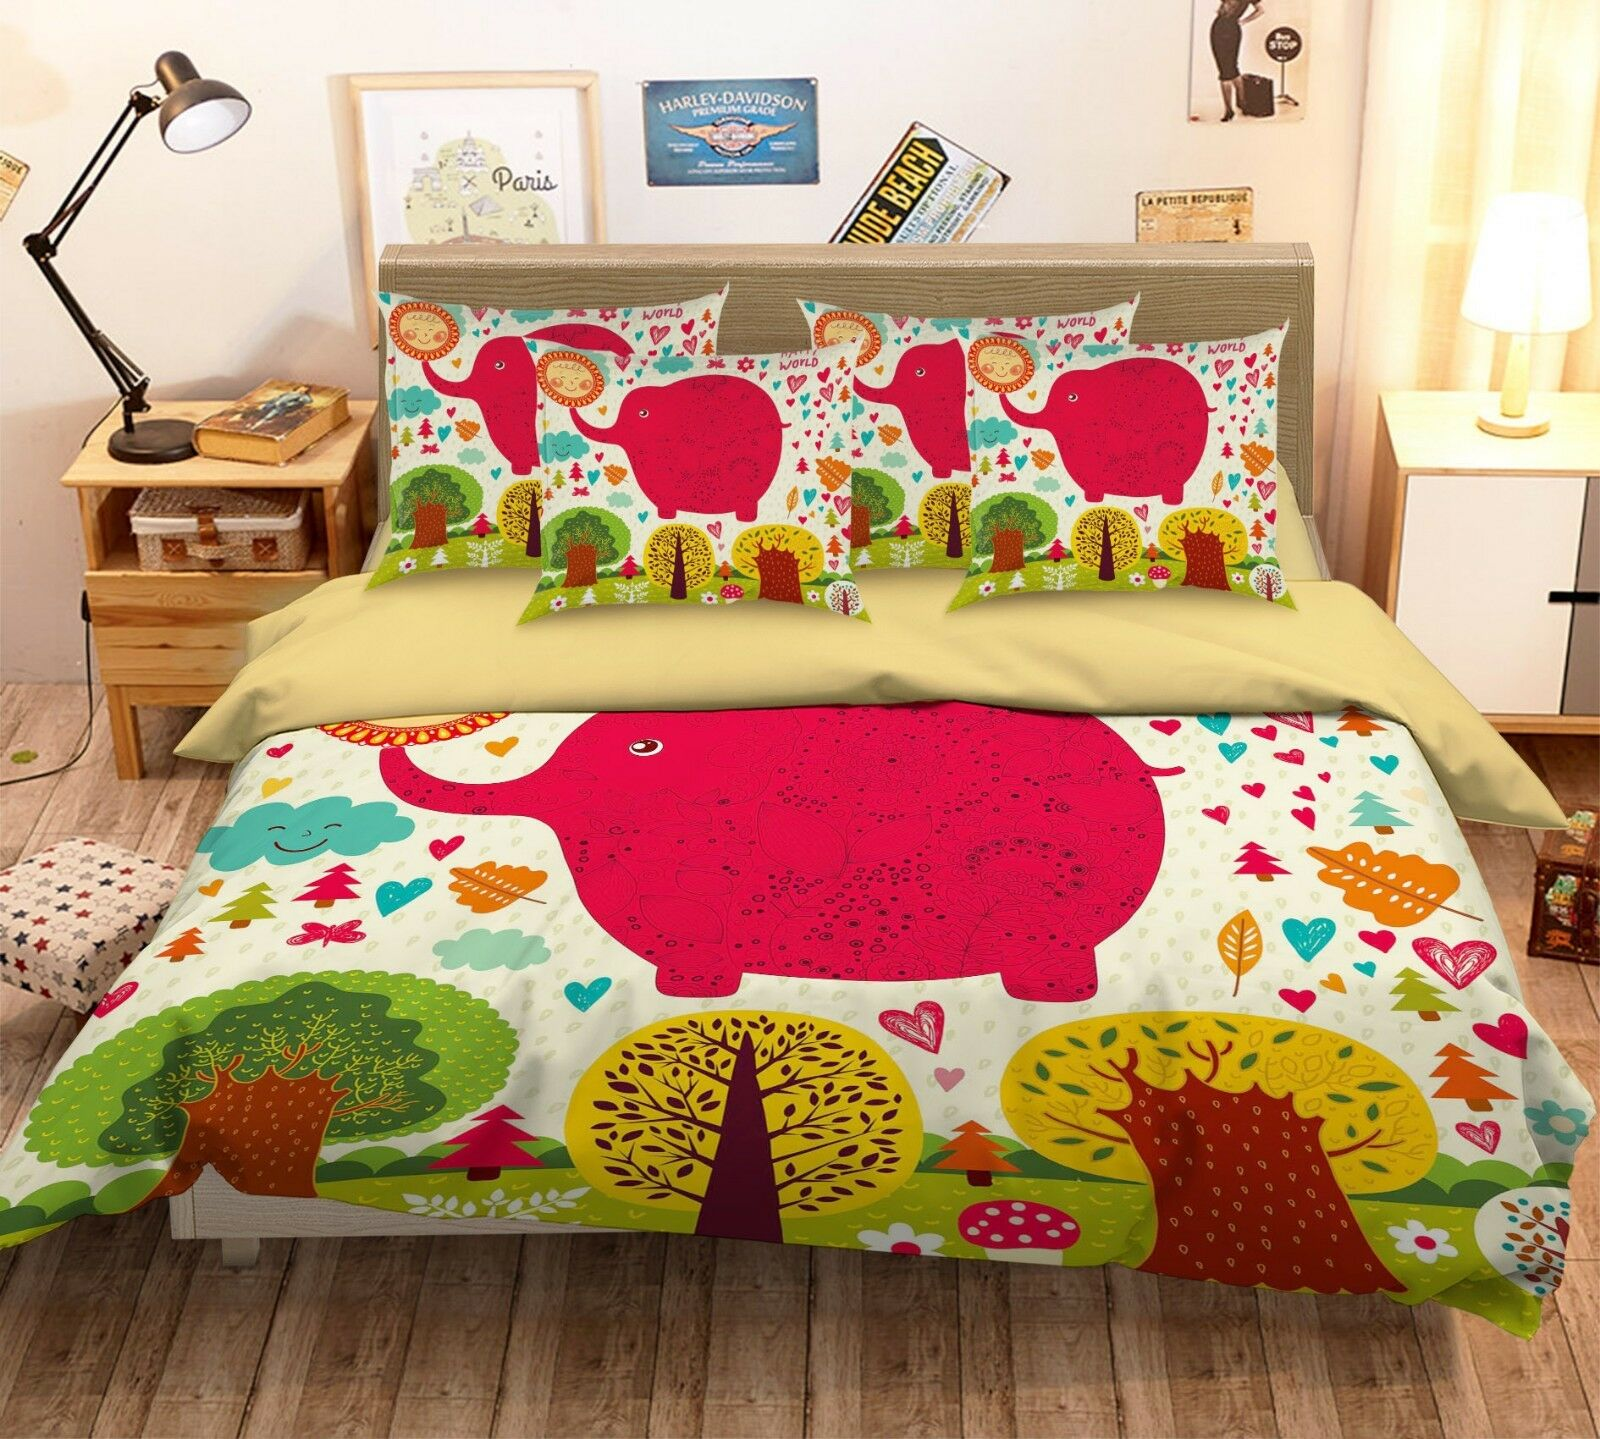 3D rosso Elephant 26 Bed Pillowcases Quilt Duvet Single Queen King US Lemon